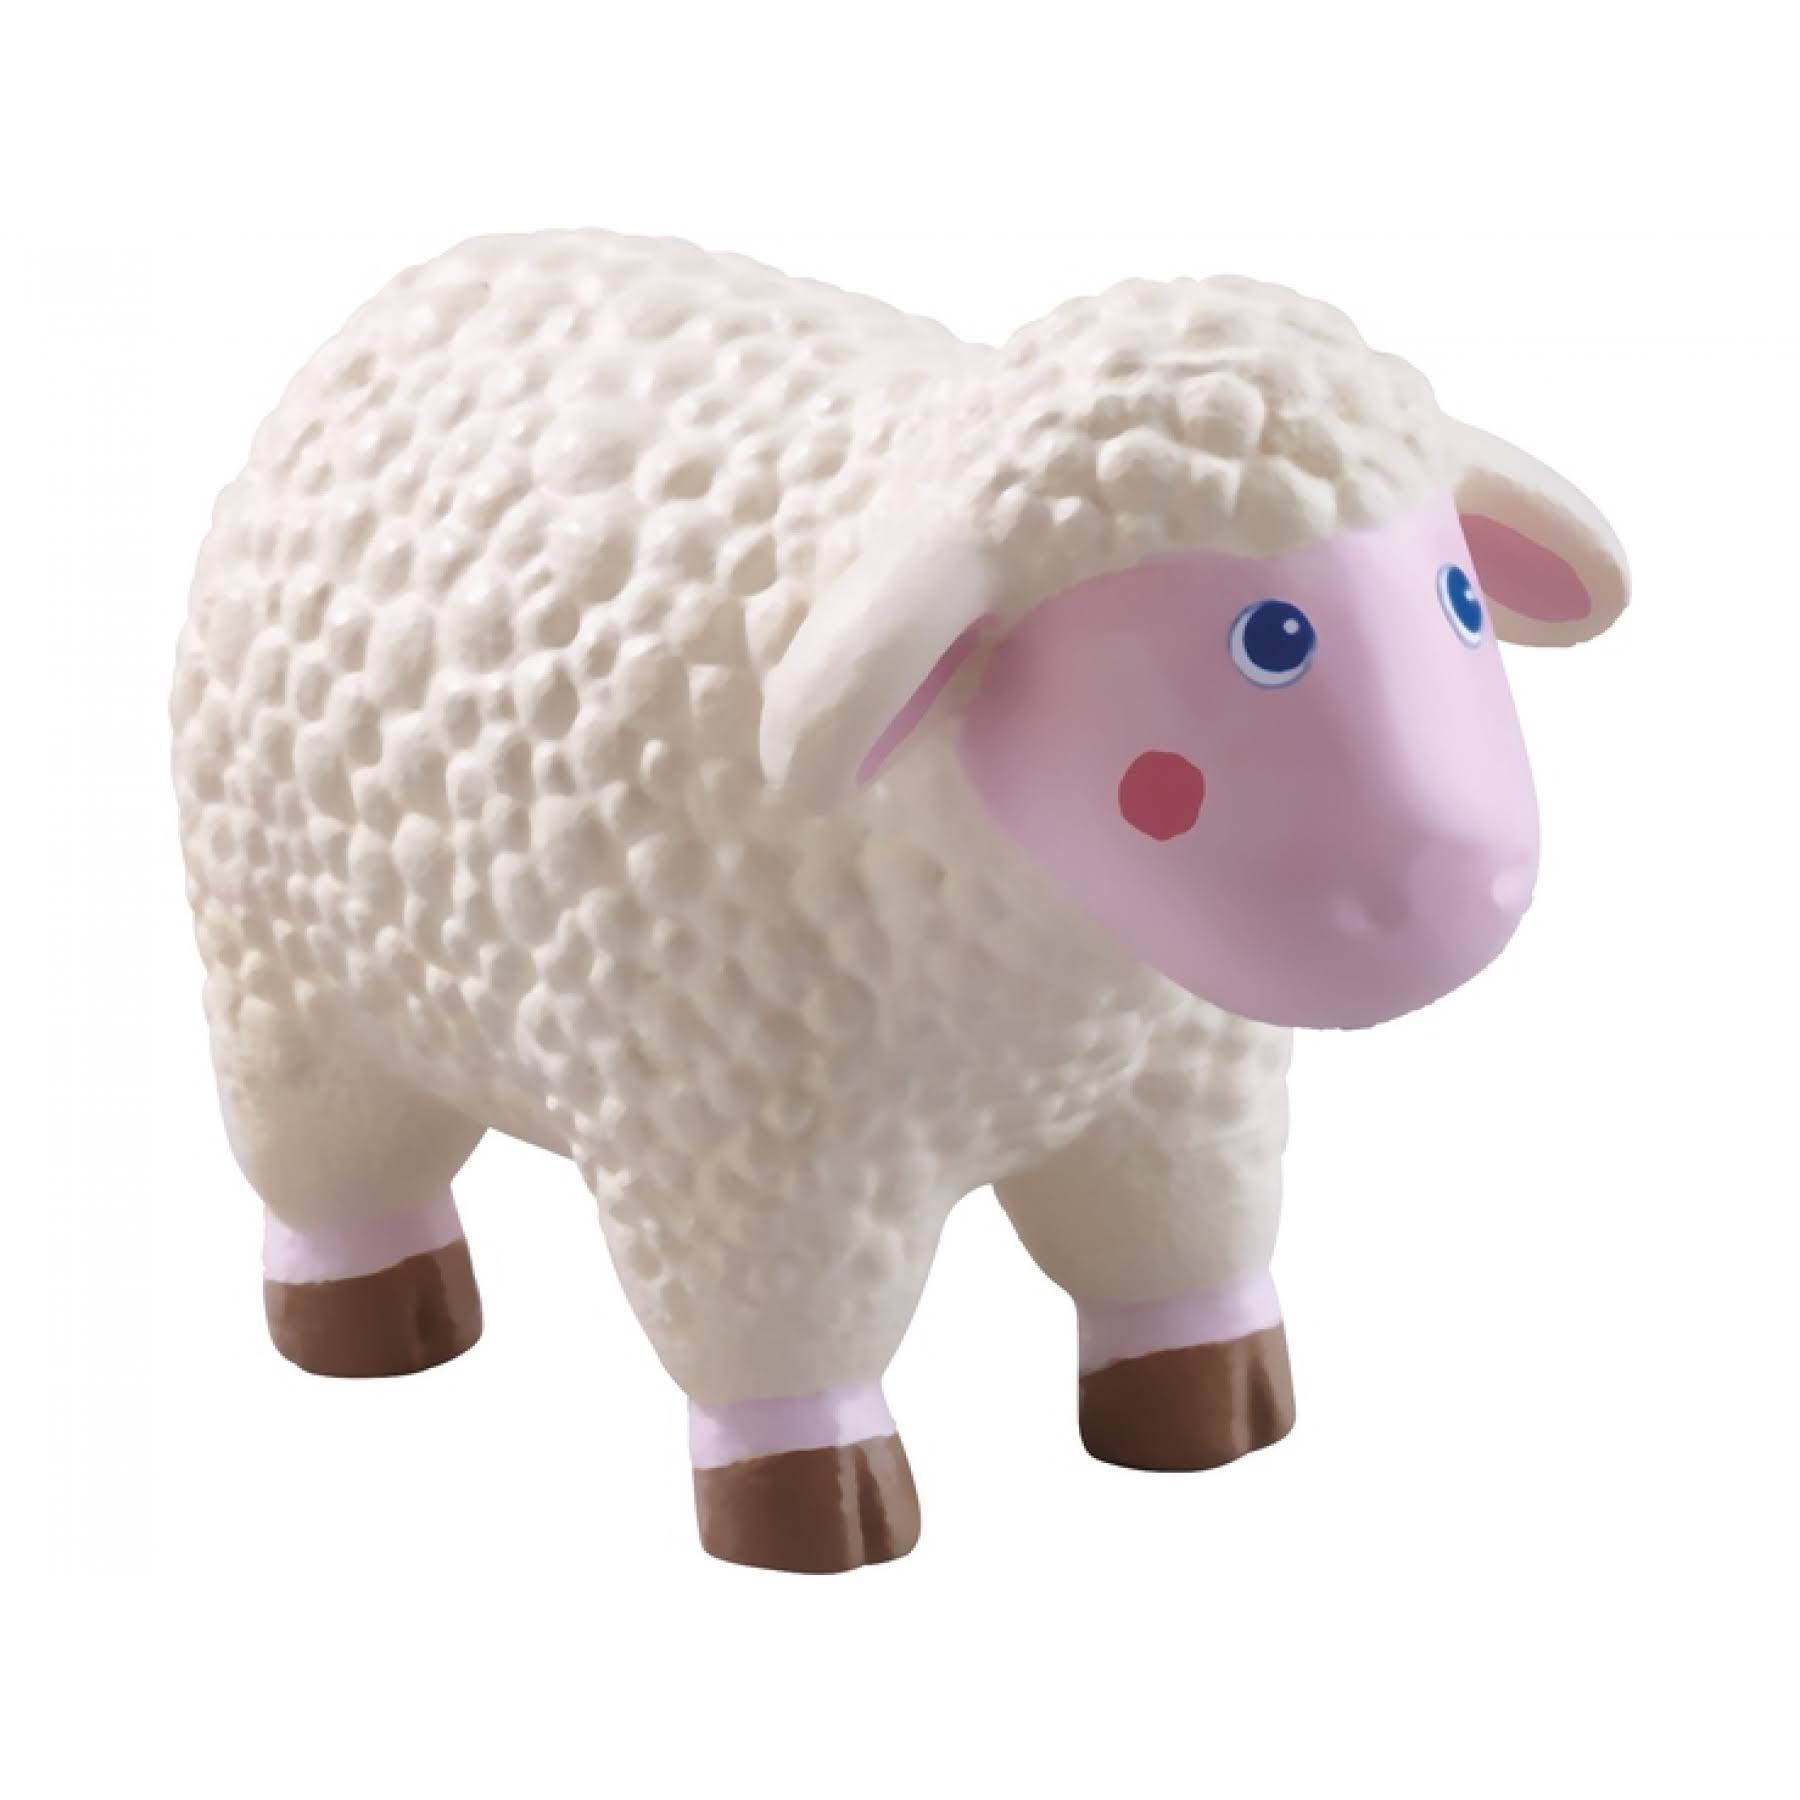 Haba Little Friends Sheep Figure Toy